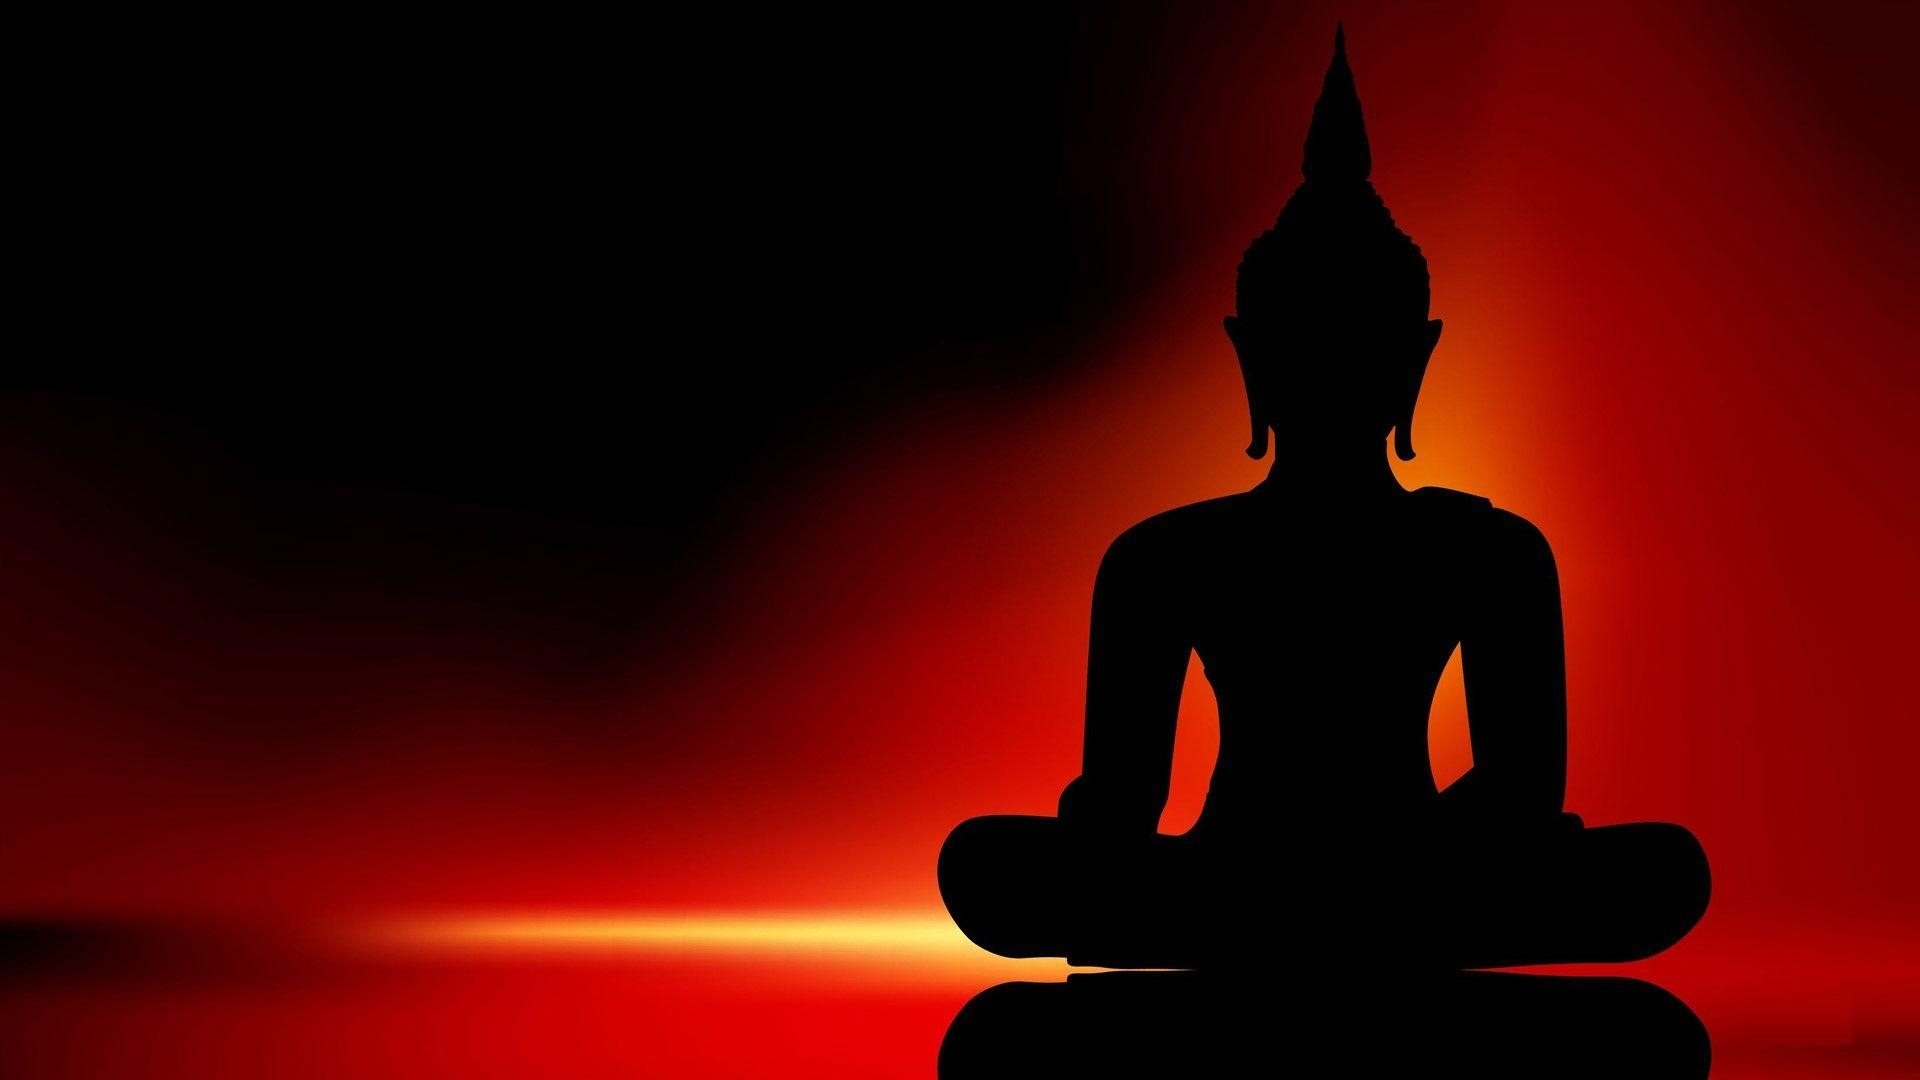 Buddha Wonderful 3d Hd Wallpapers Buddha Black Shading Images 1920×1080